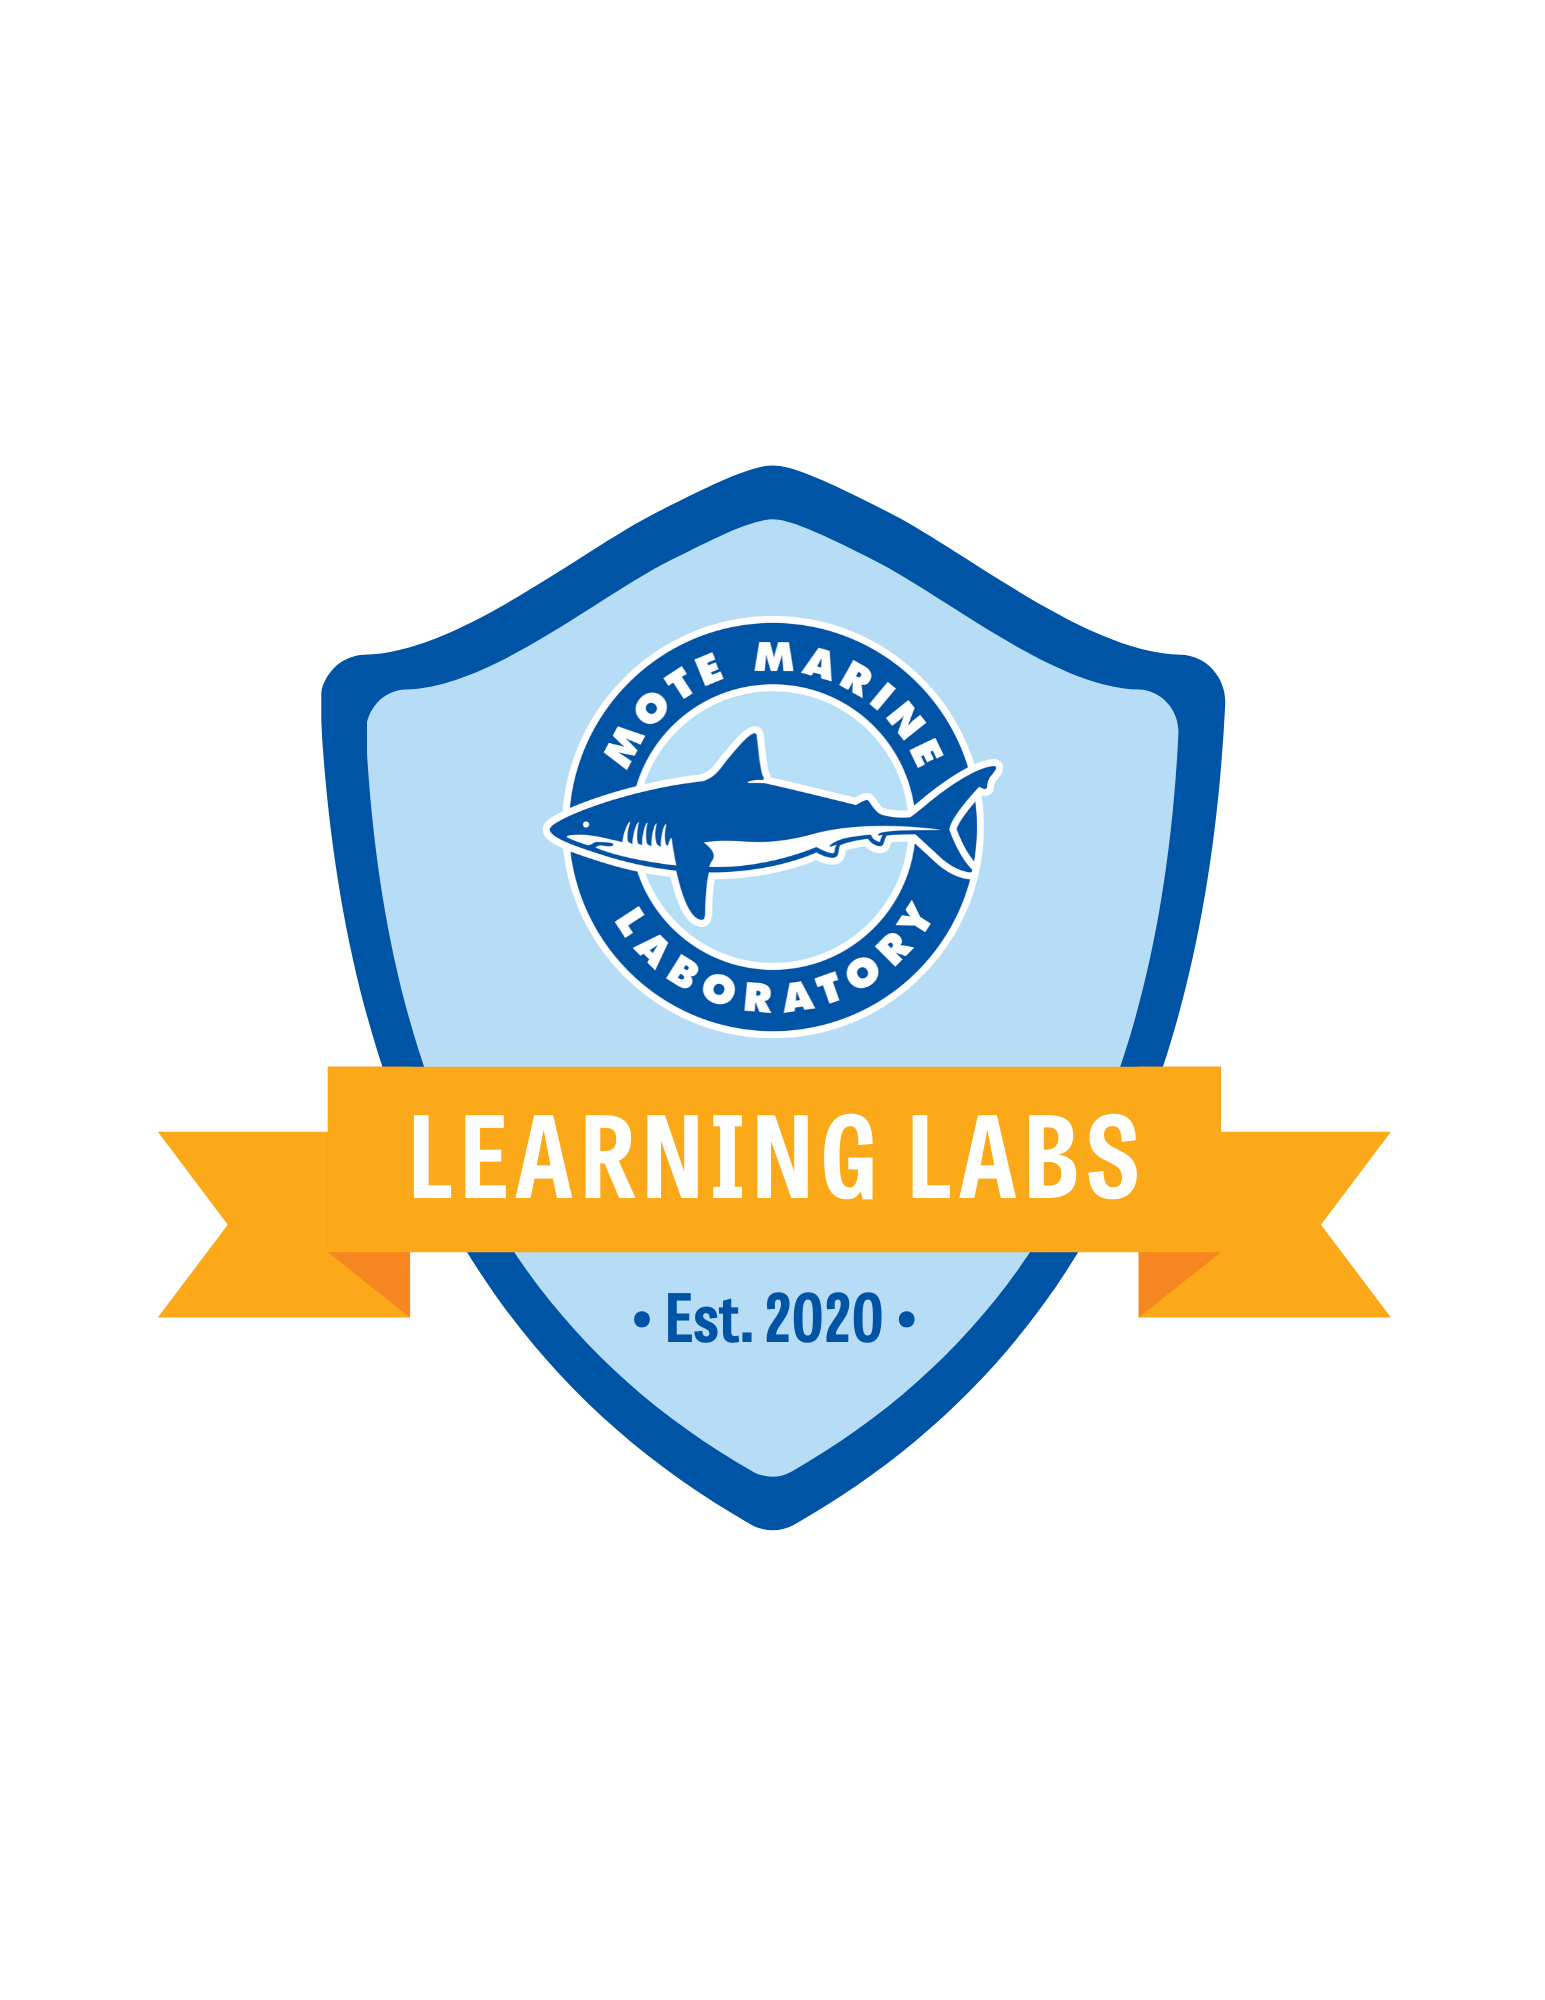 Learning Labs logo, a shield with a sash and the name over it